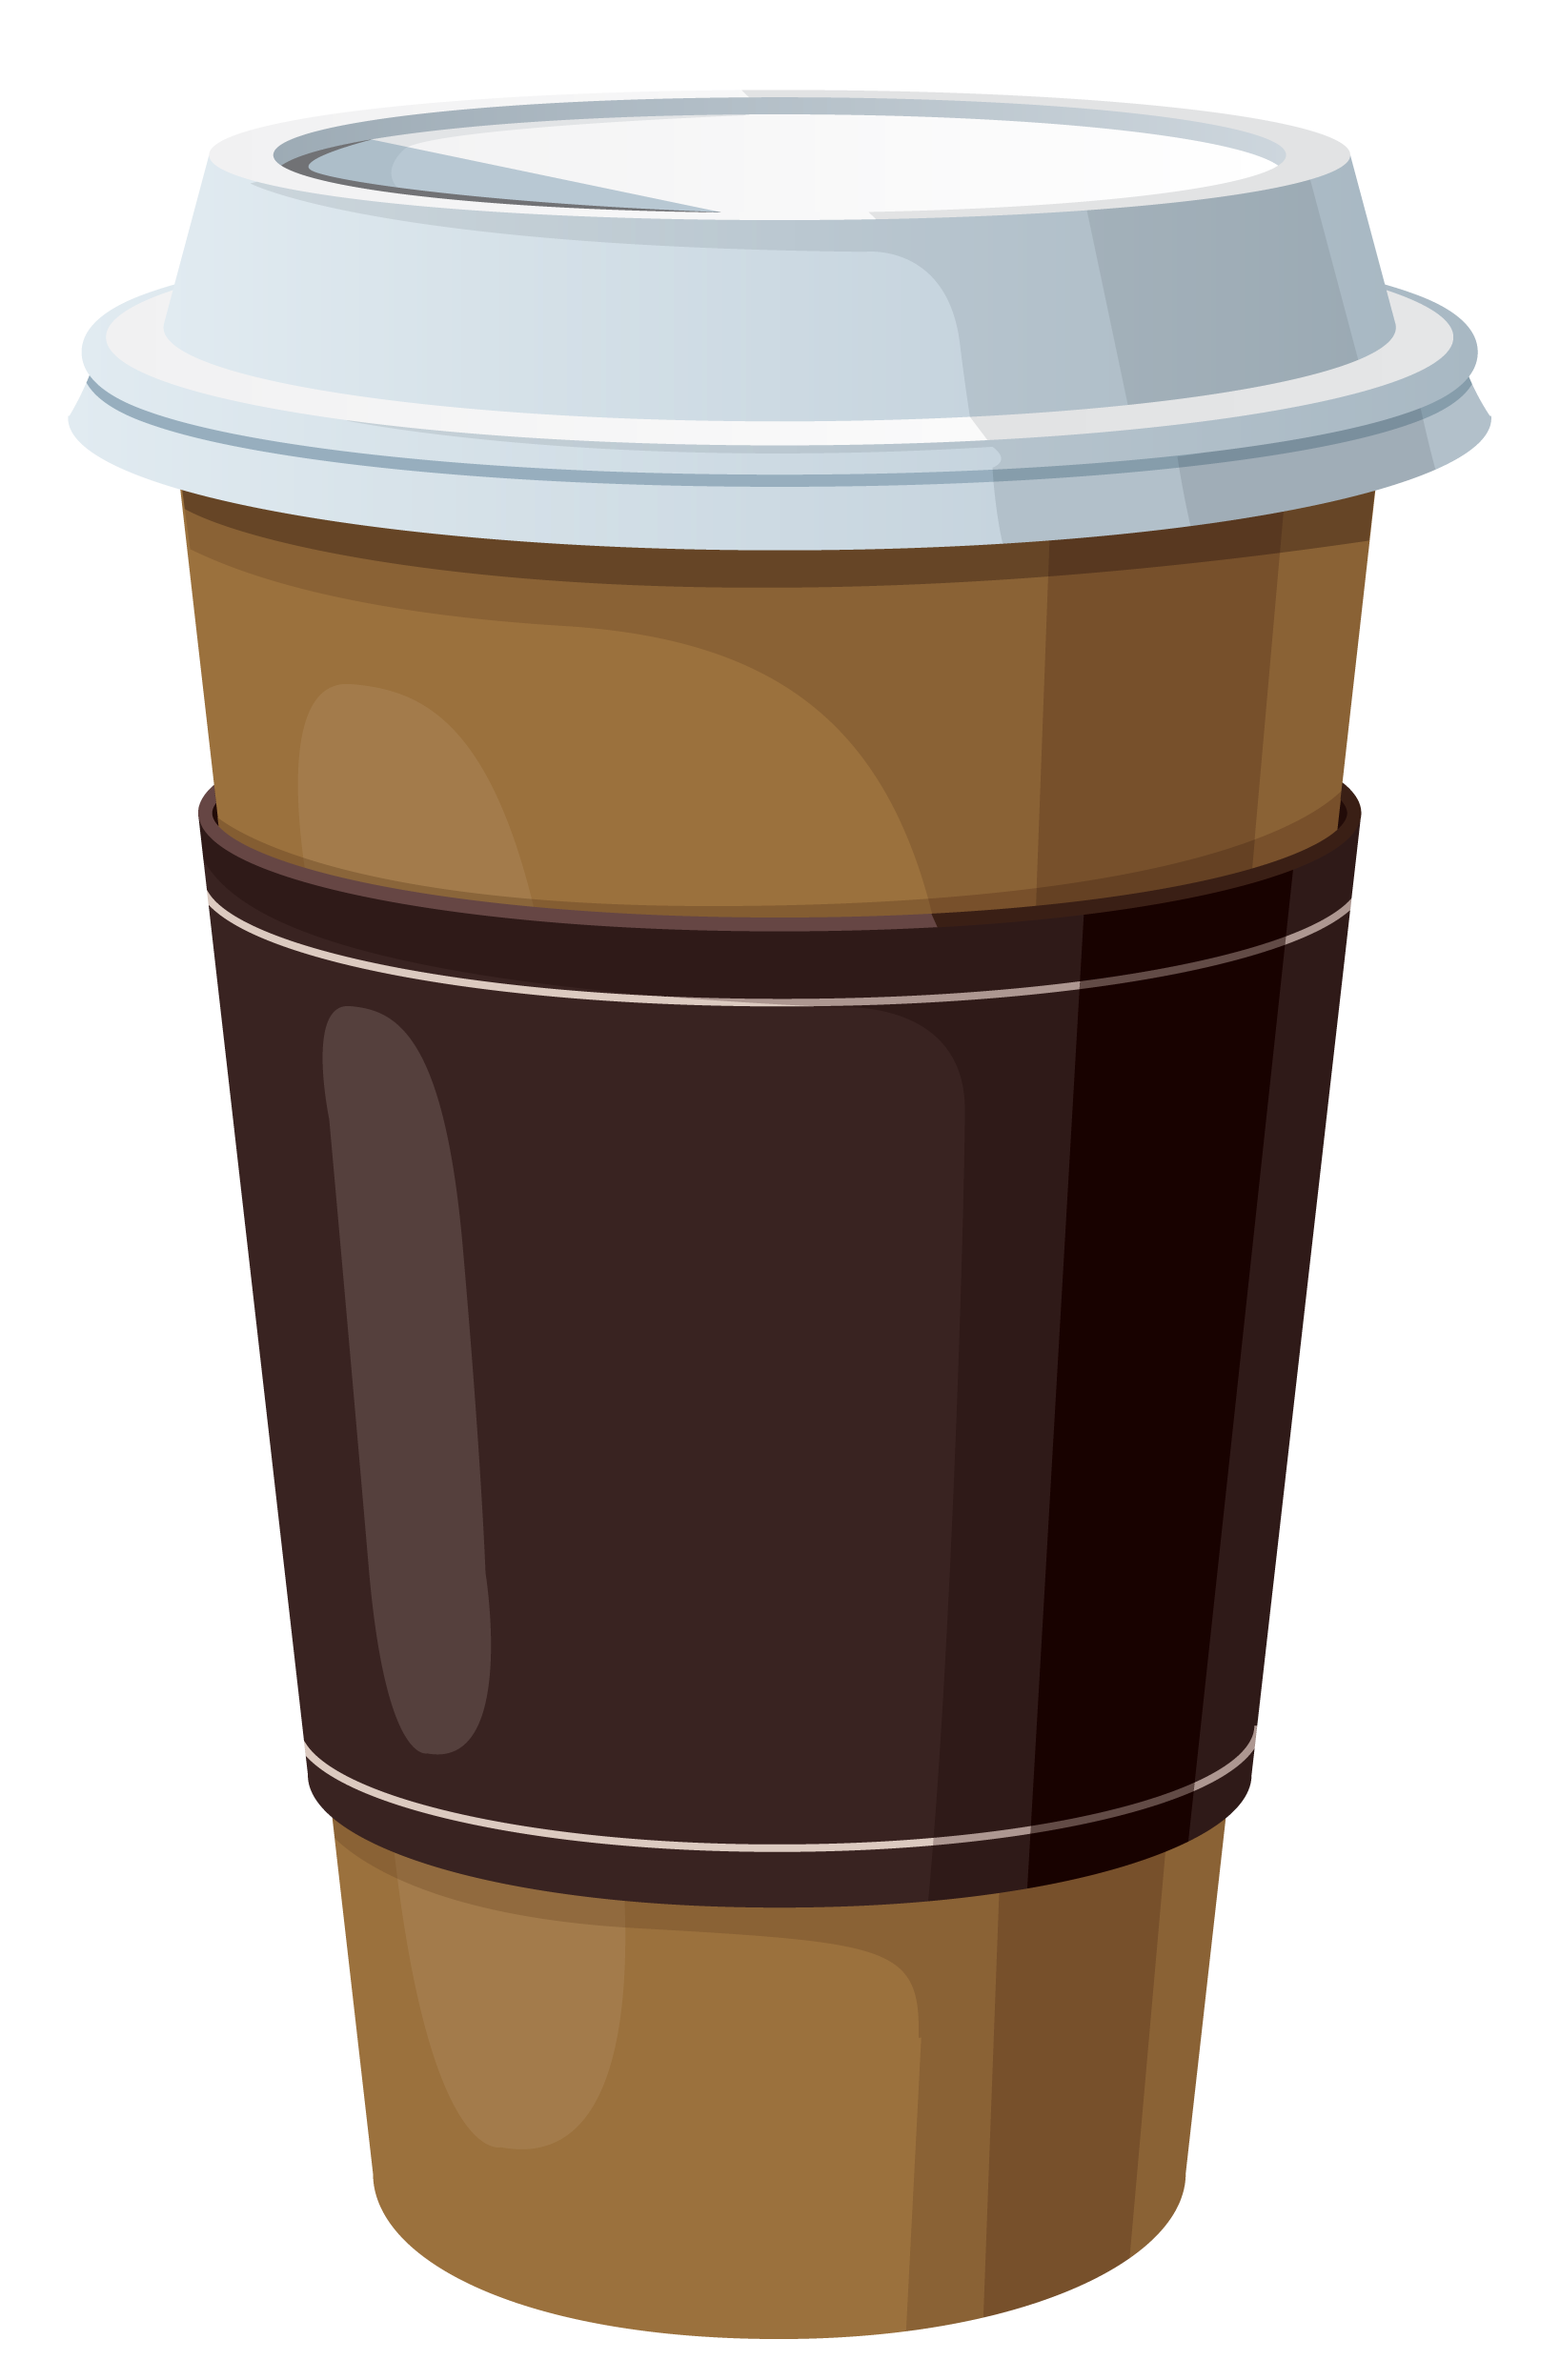 Coffee cup clipart cute. Prepare for some yummy